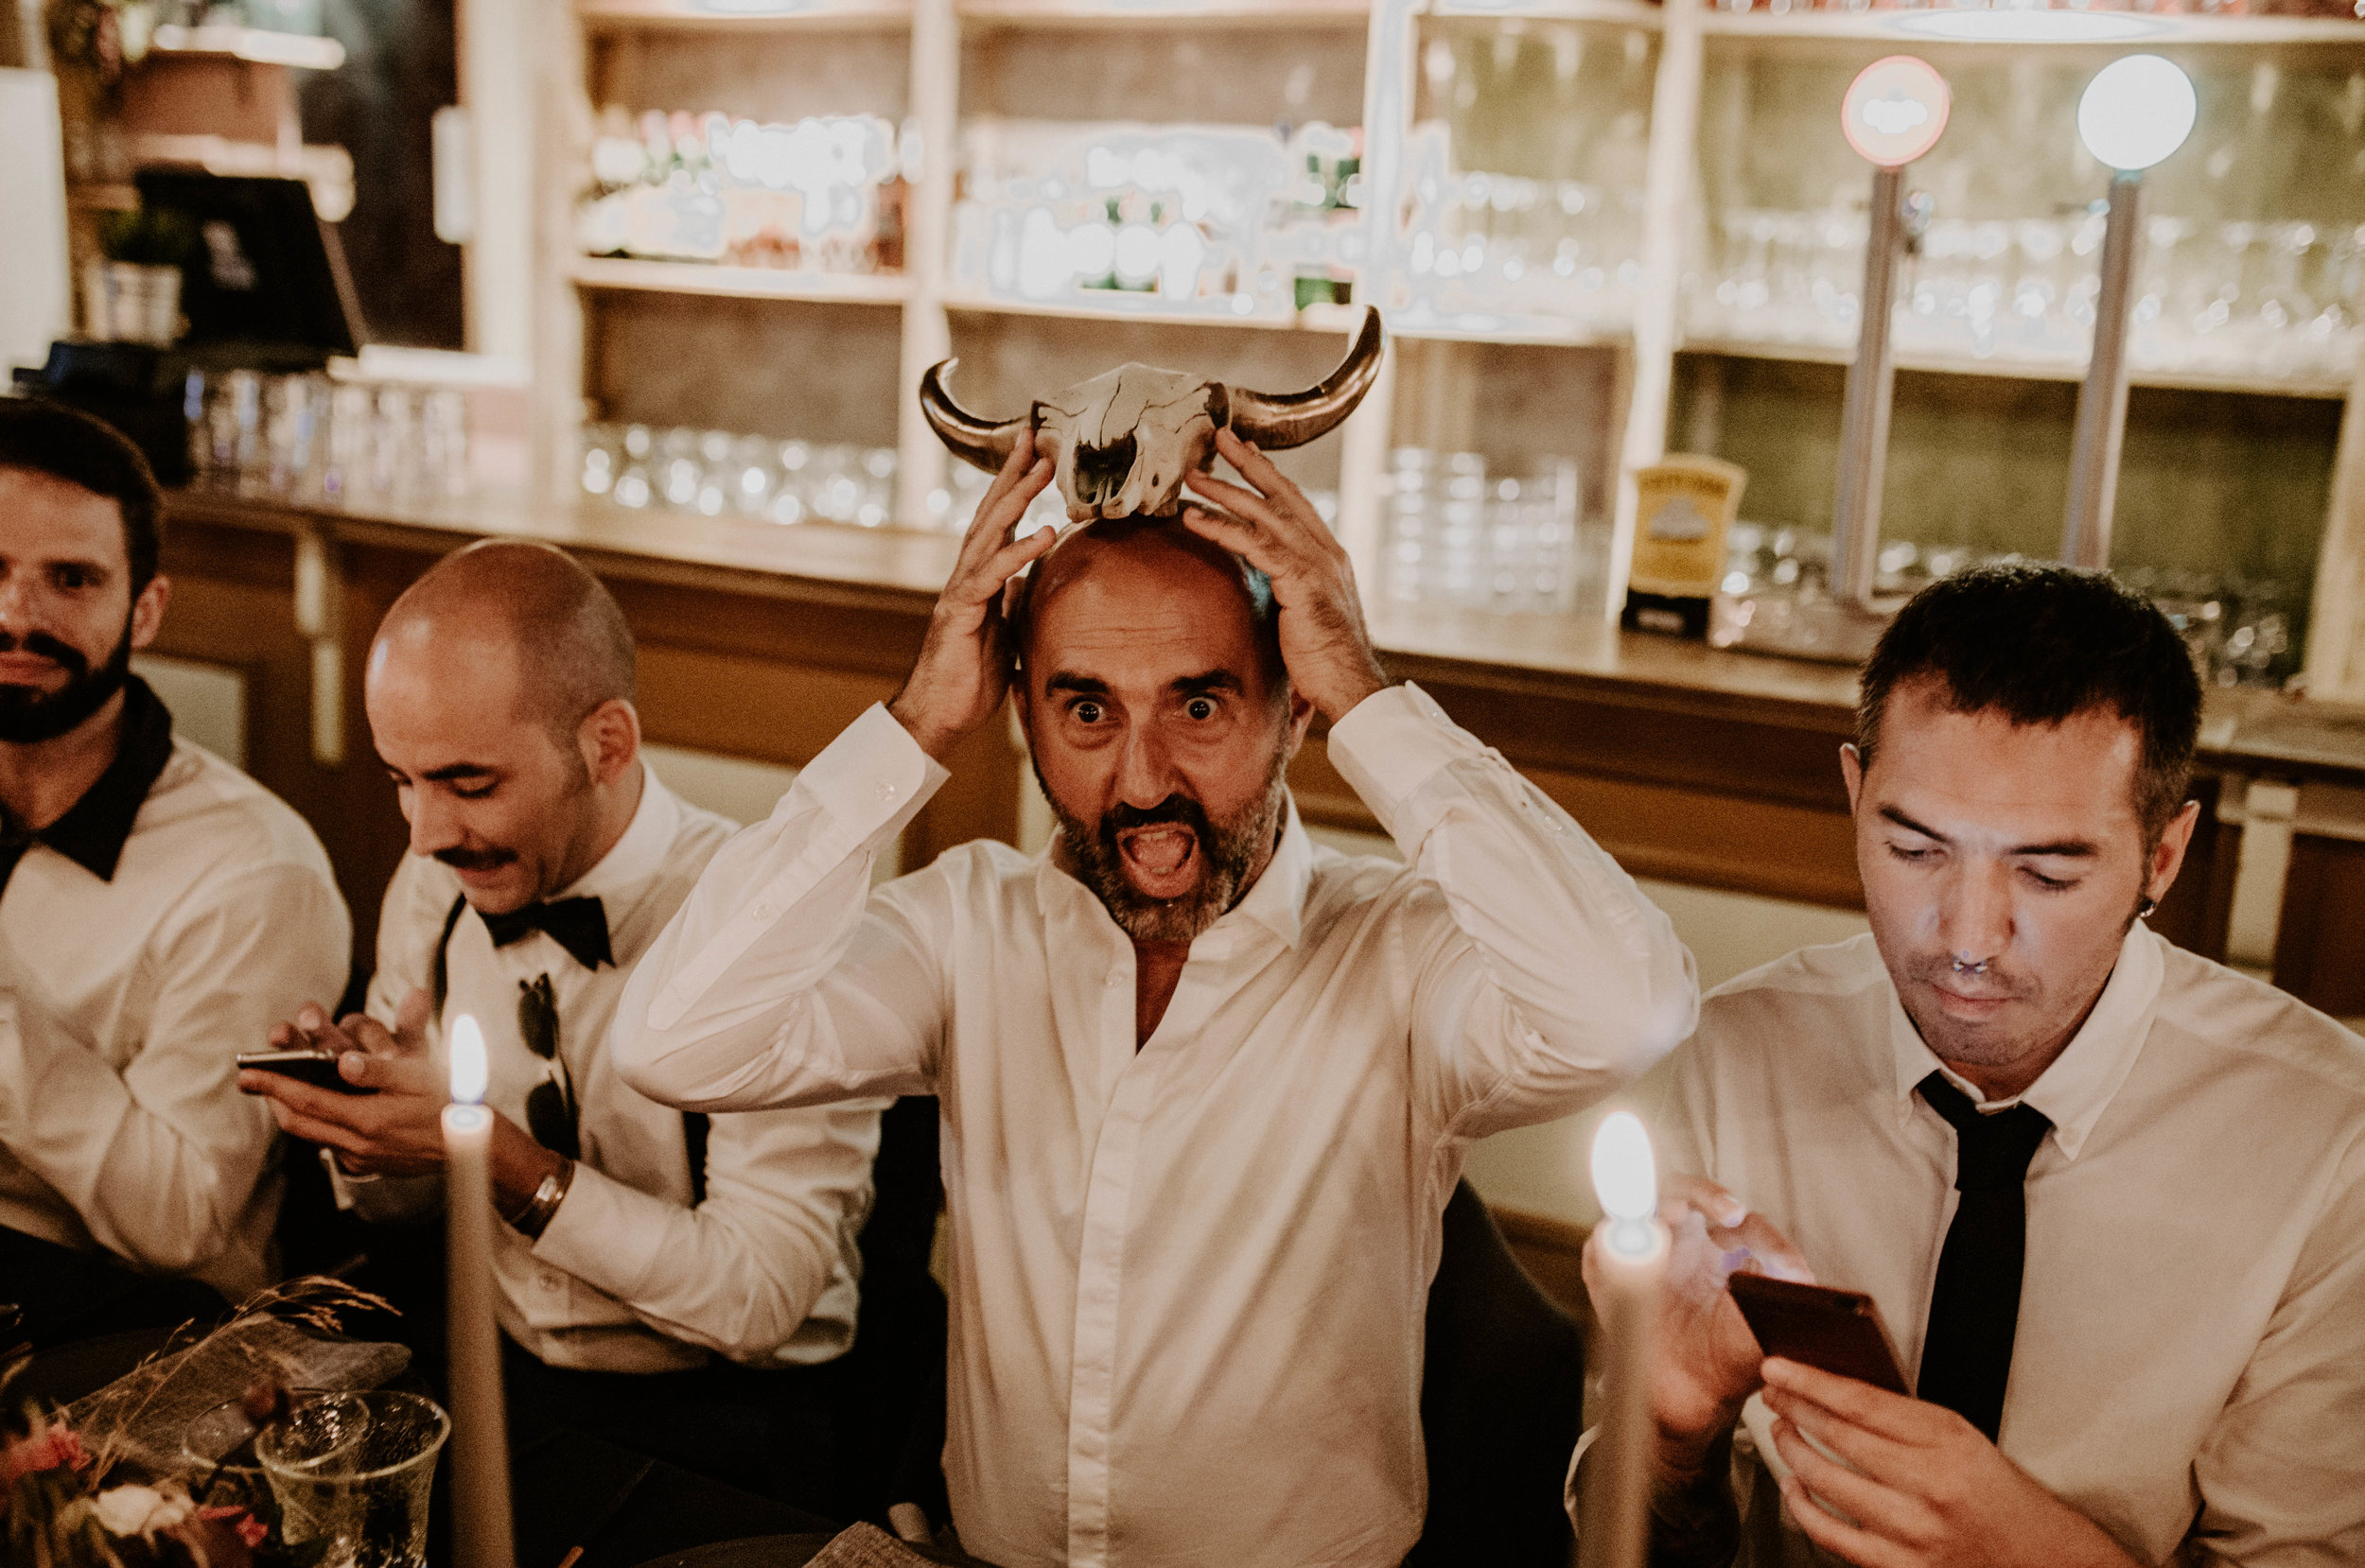 thenortherngirlphotography_bodasindustriales_bodasdiferentes_weddingphotographer_spanishphotographer_spanisgweddingphotographer_happyendings_mercantic_elsiglomercantic_antichrist_love_neon_weddingtattoo_CYNTHIAMANOLO-707.jpg